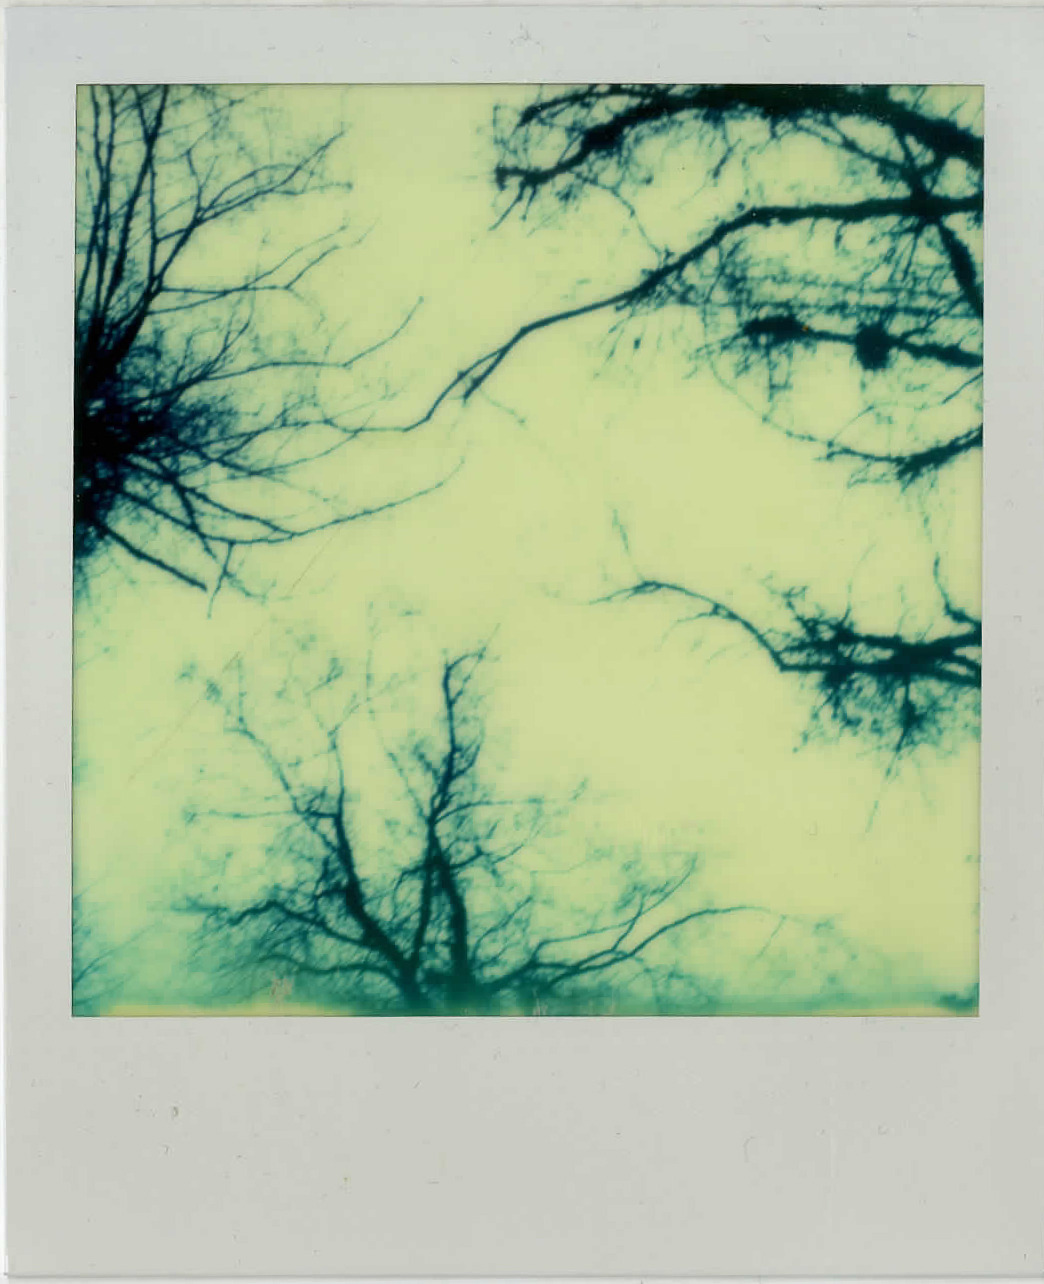 Branches.  SX-70 Polaroid, Impossible film.